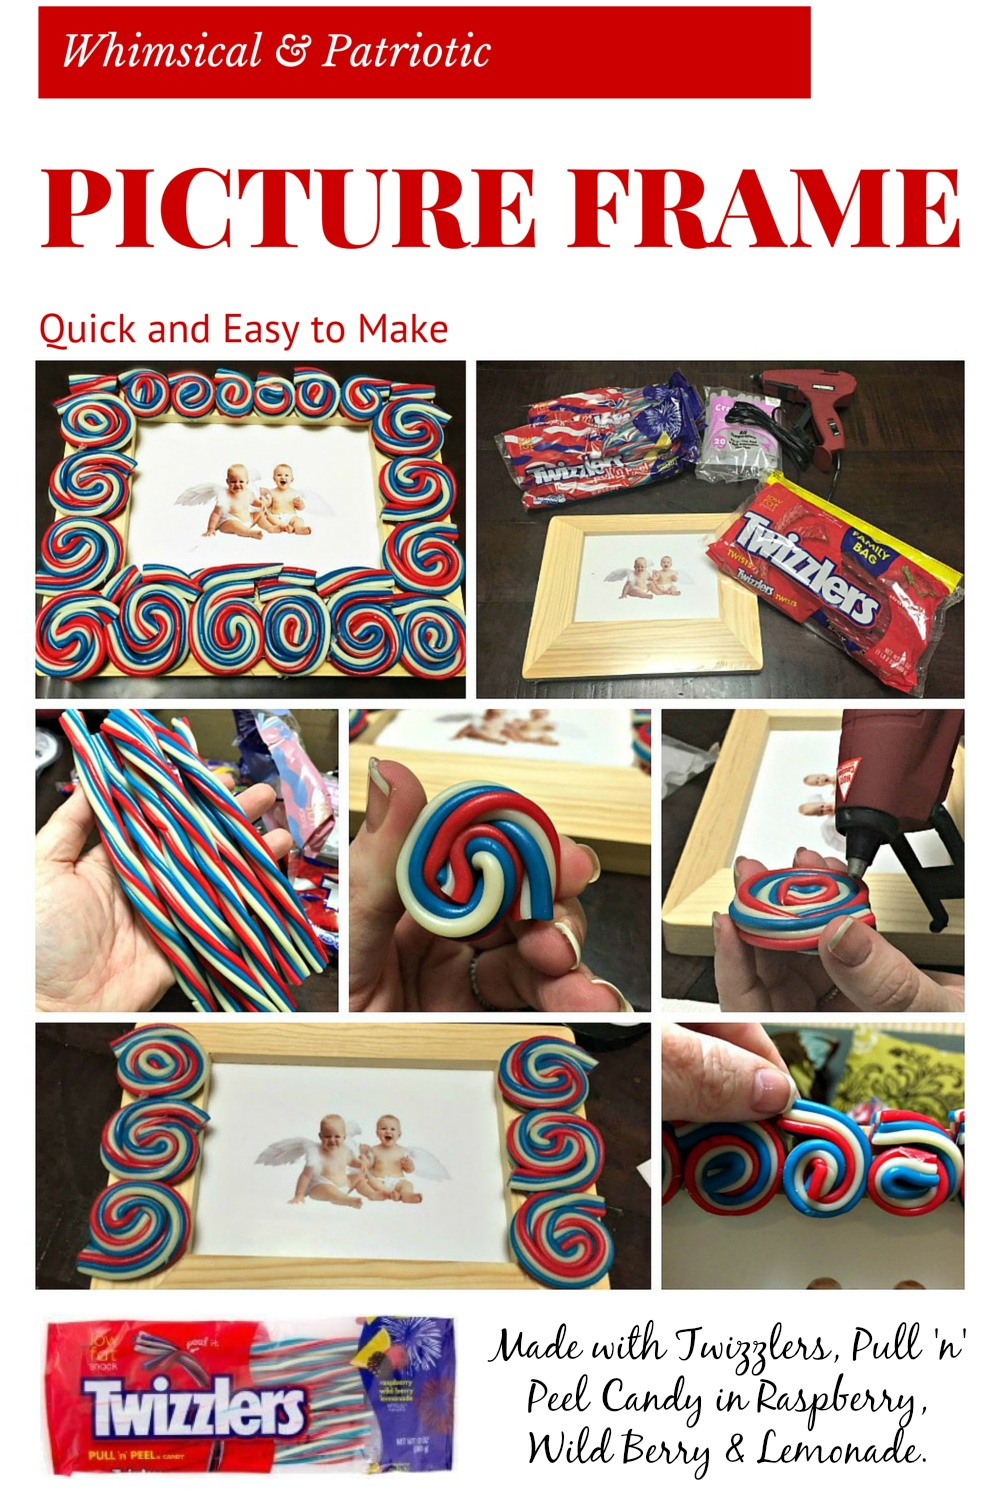 Twizzlers Whimsical Patriotic Picture Frame